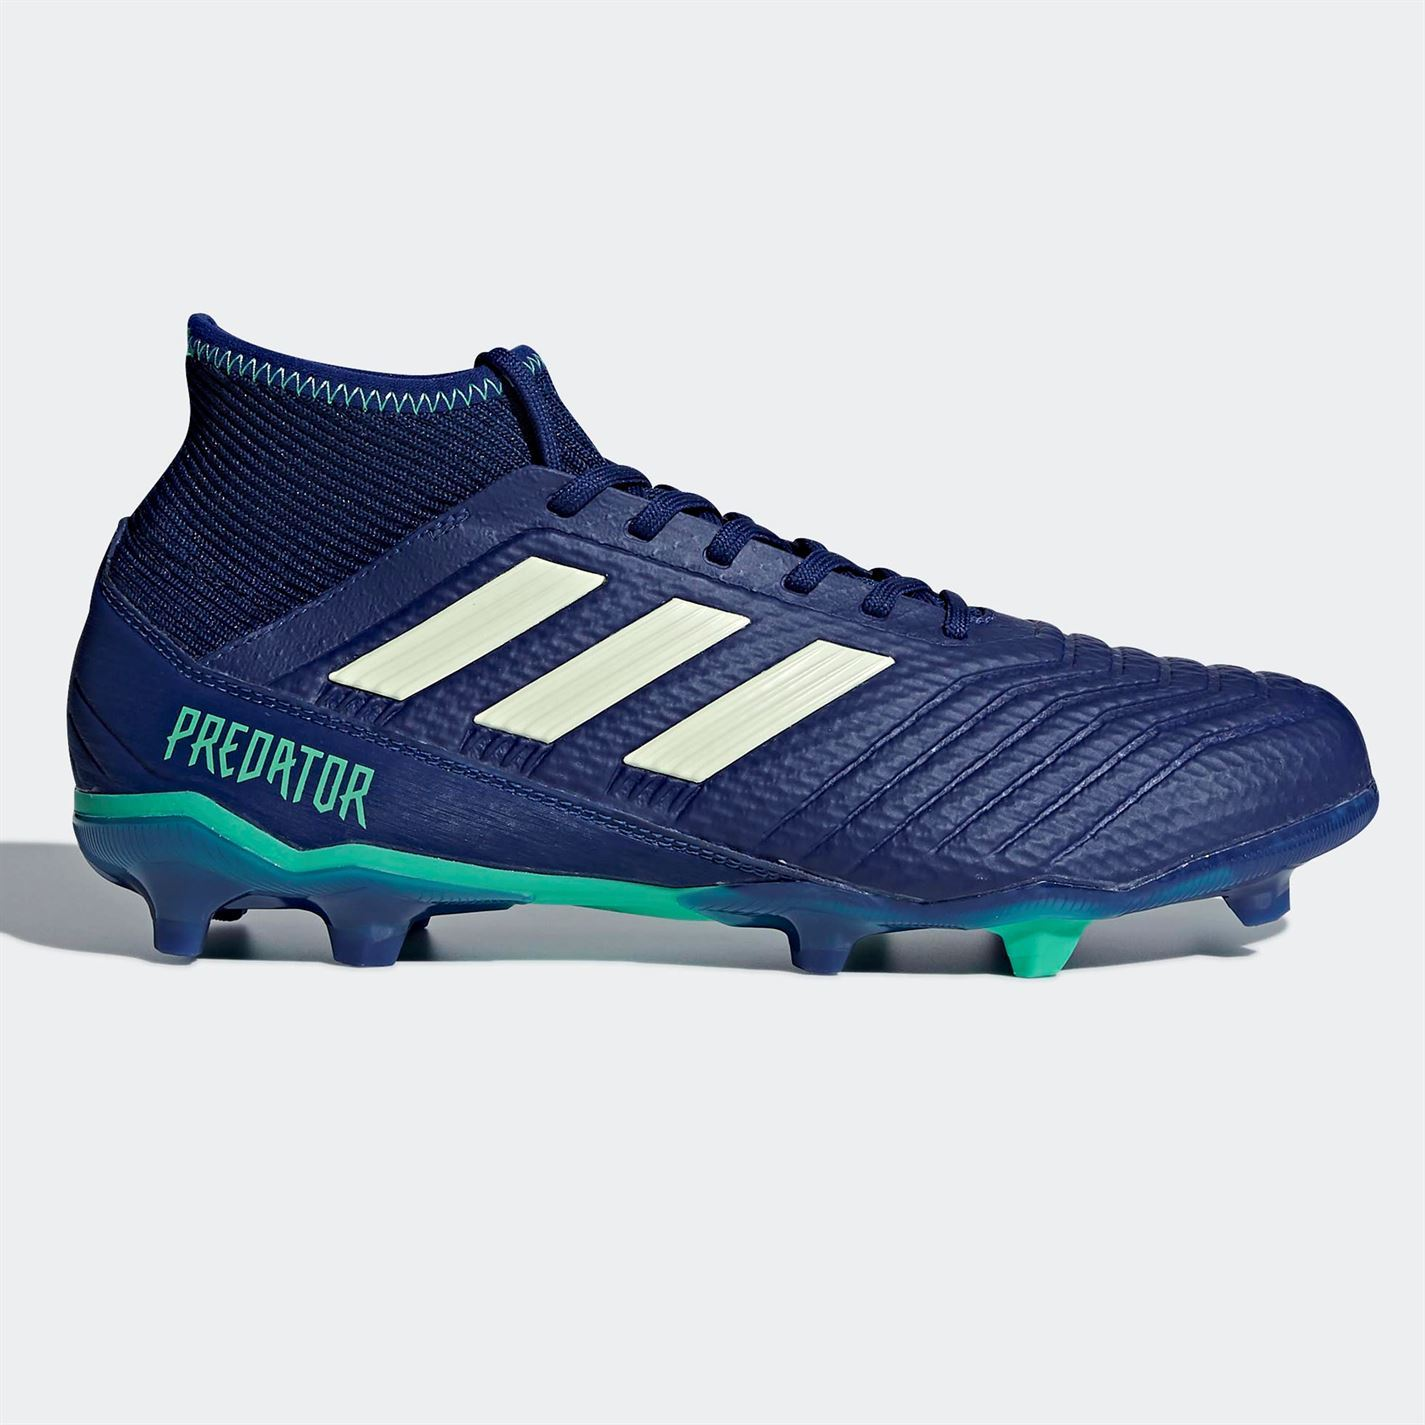 221d64ab6 ... adidas Predator 18.3 FG Firm Ground Football Boots Mens Blue Soccer Shoes  Cleats ...